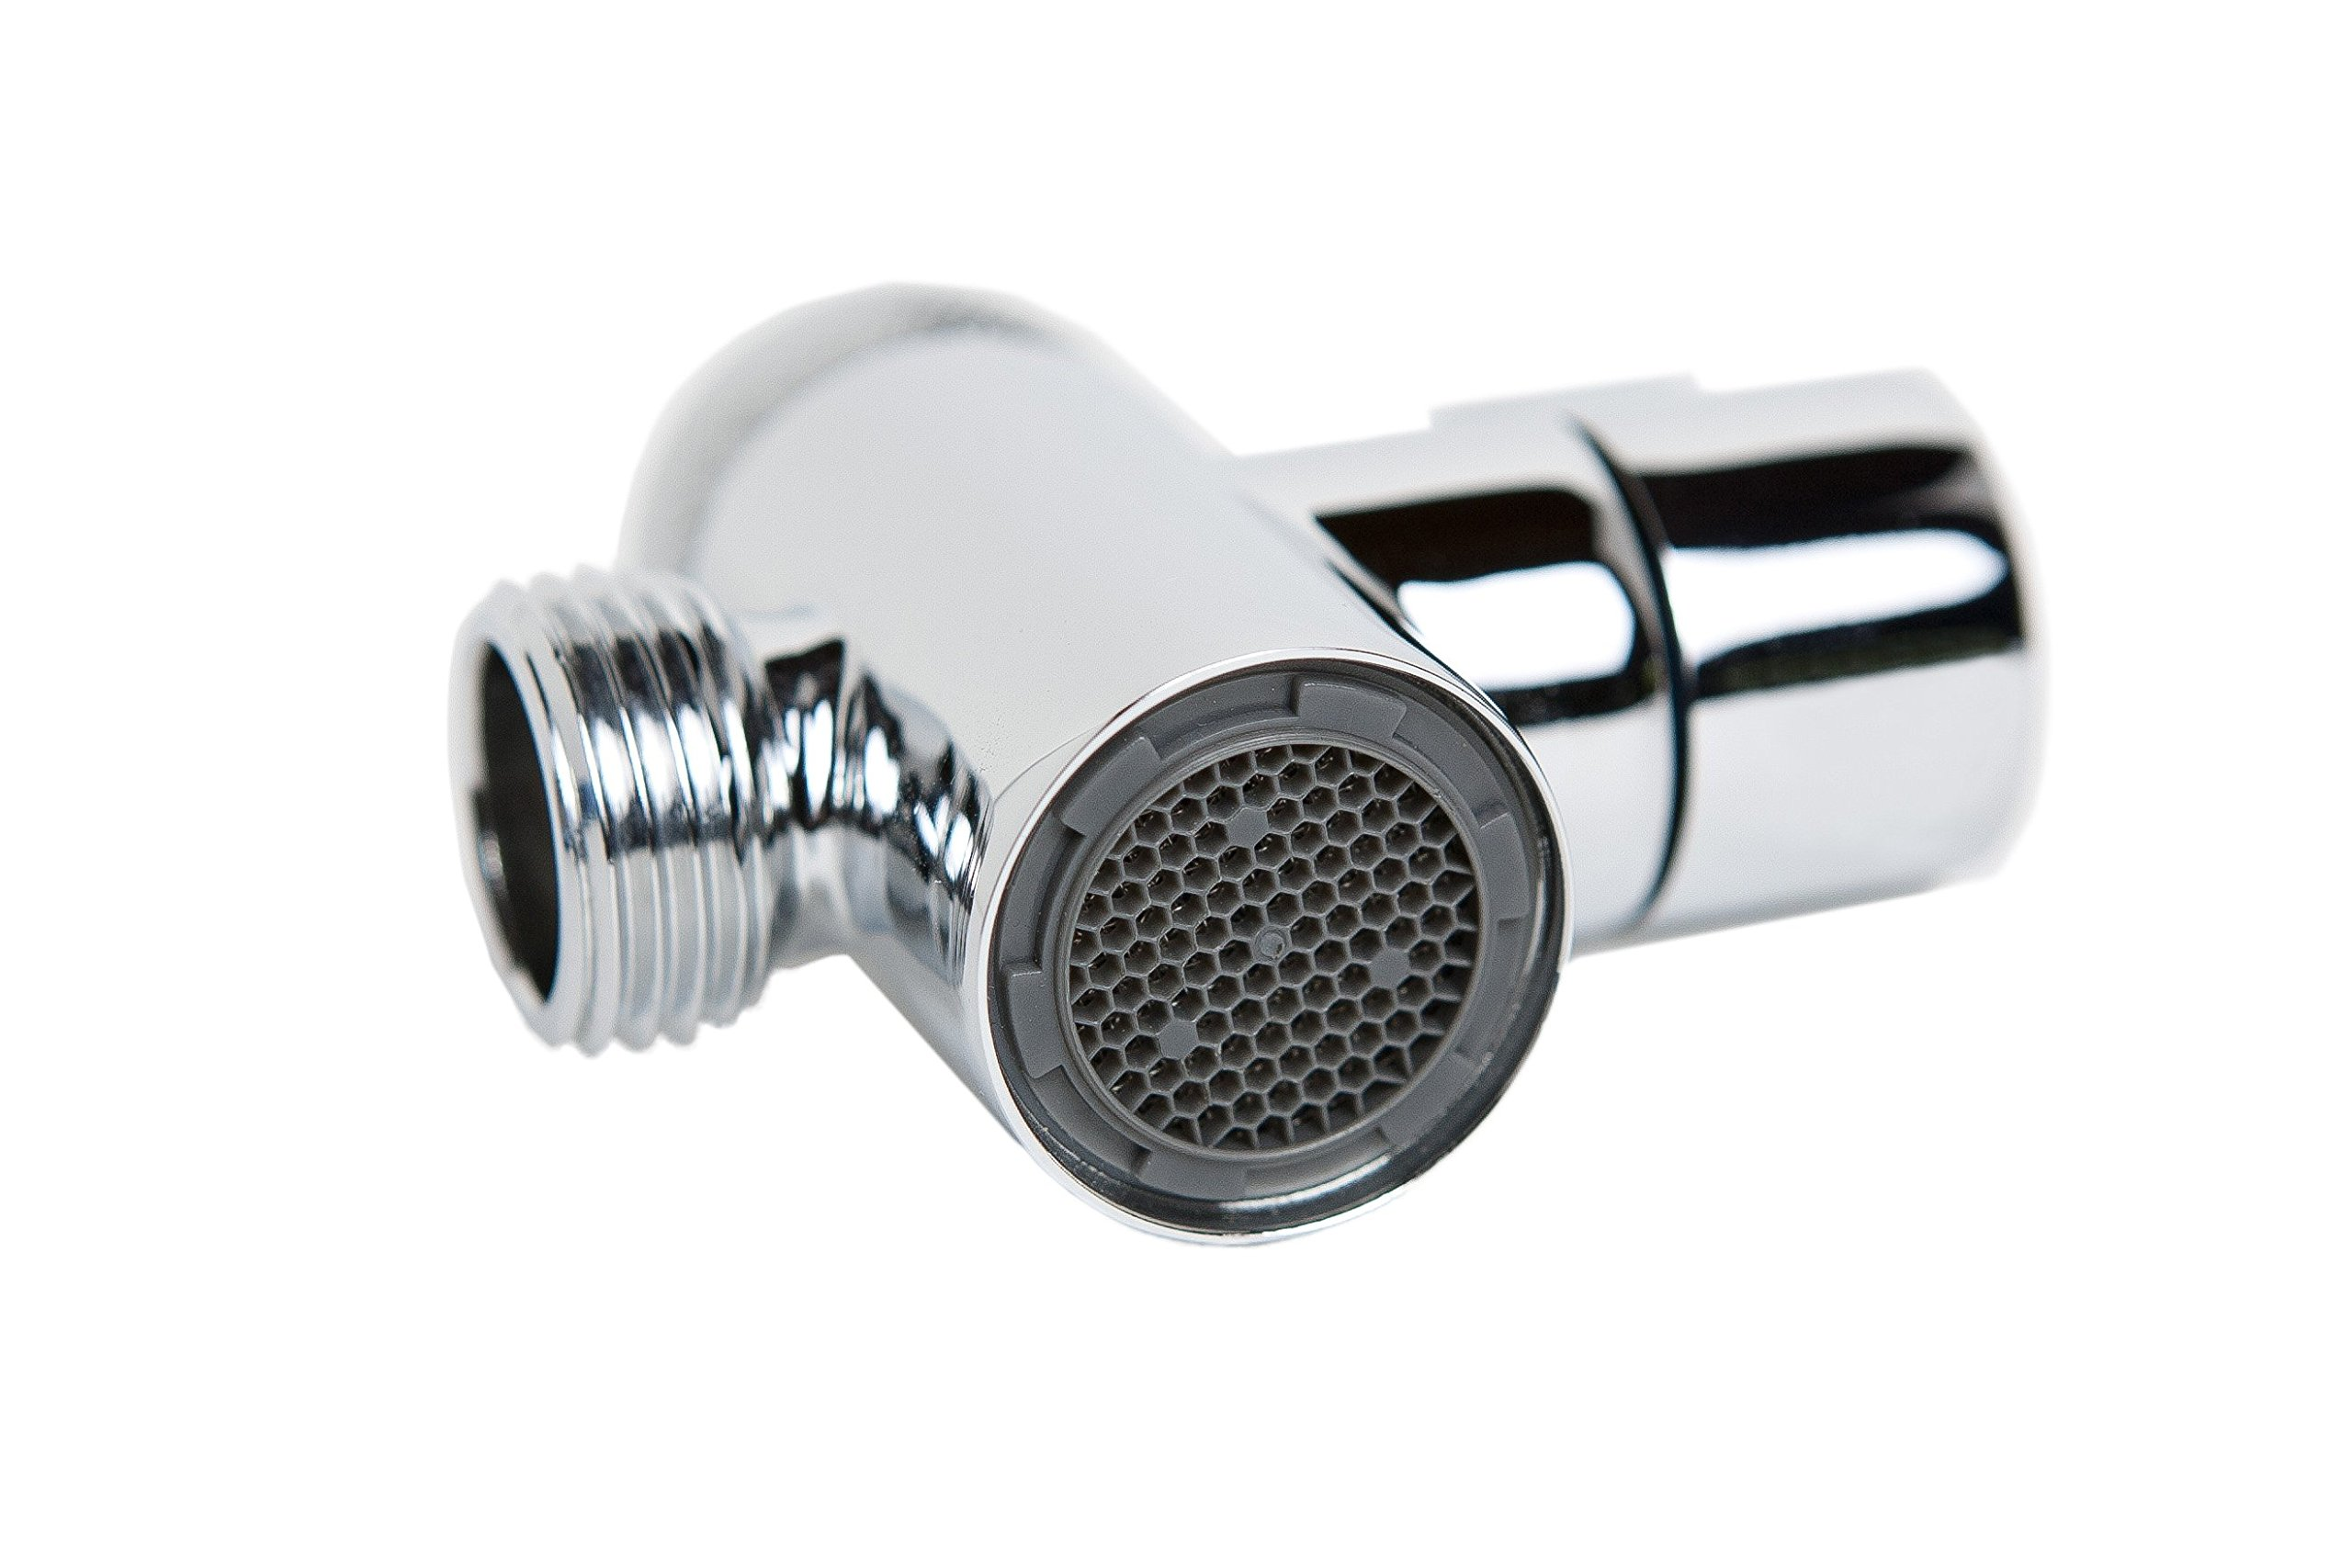 Smarterfresh faucet diverter valve with aerator and male